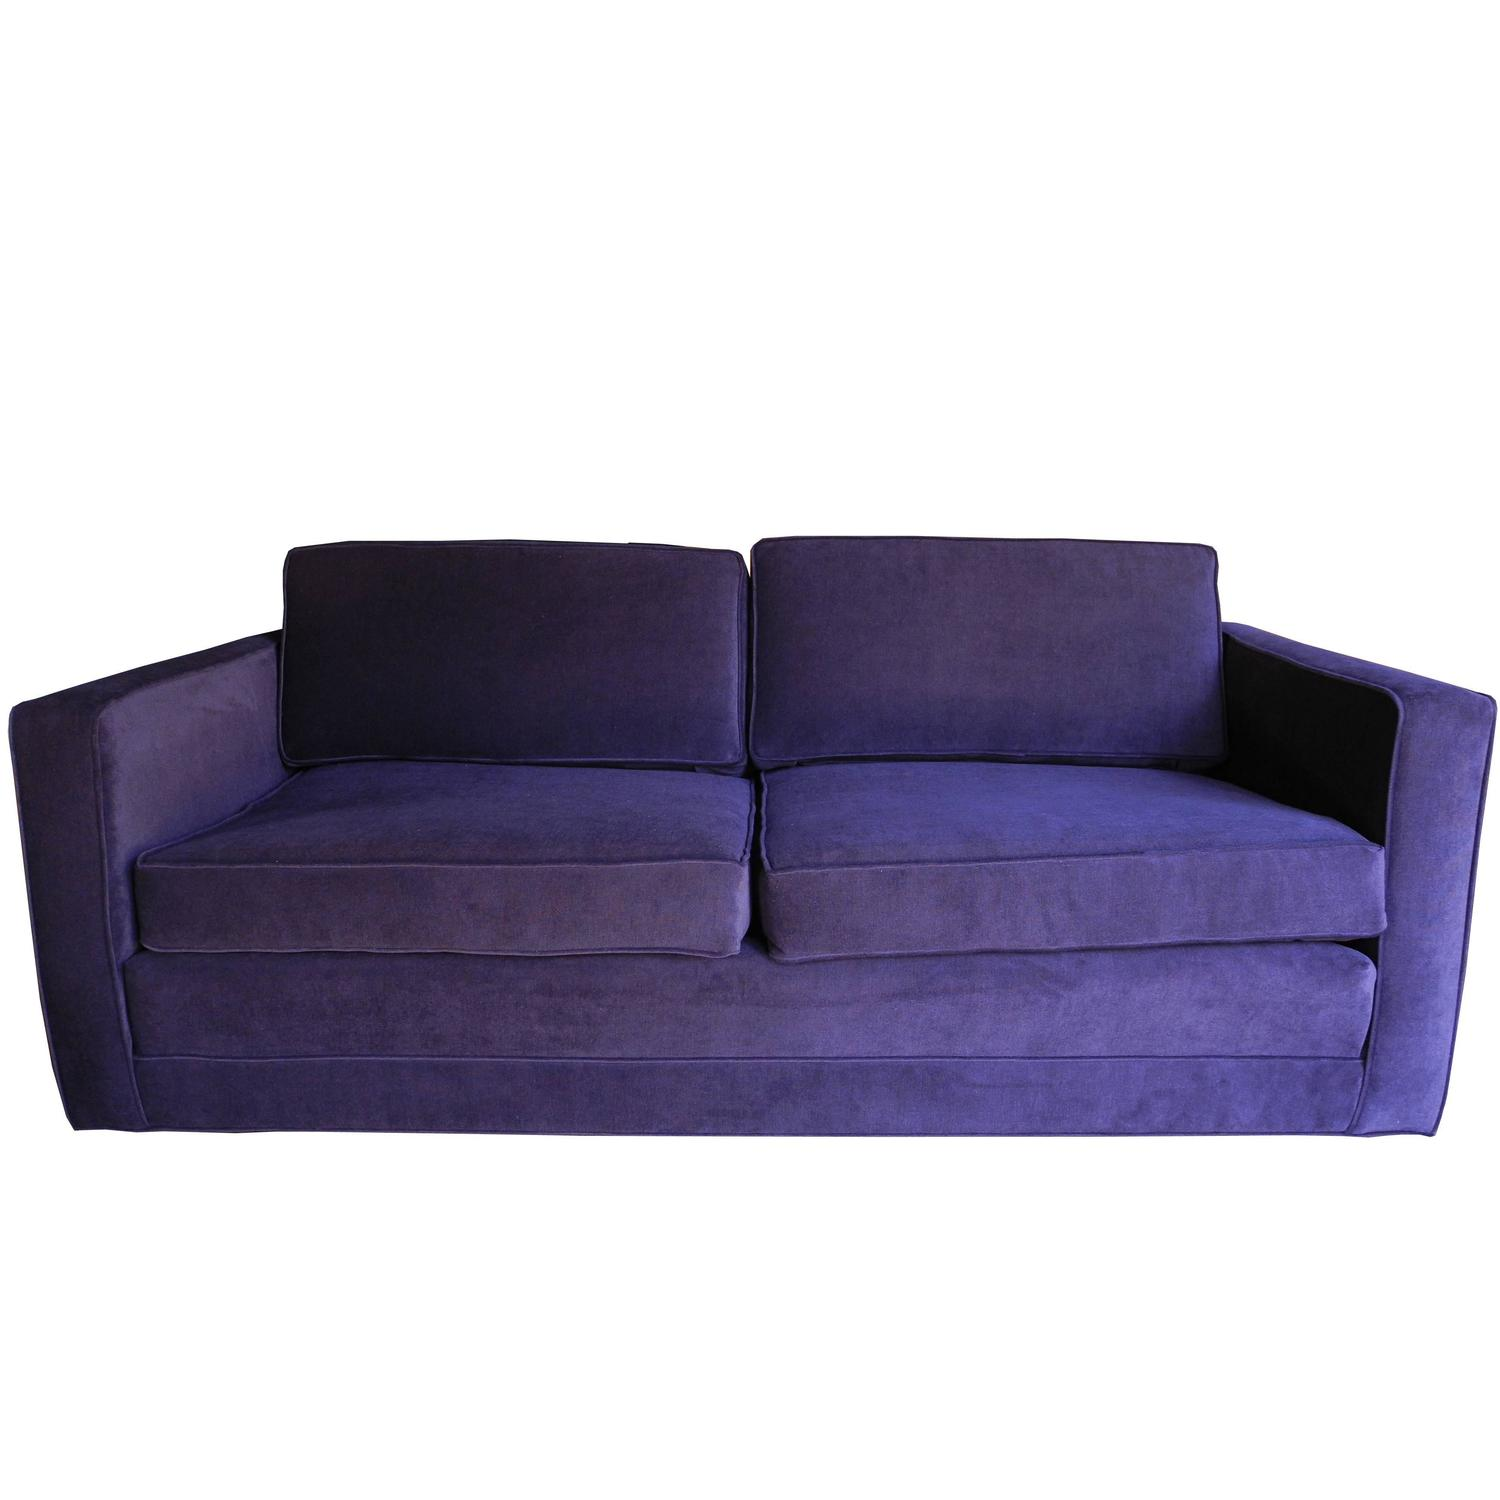 Superieur Mid Century Modern Purple Velvet Sofa / Settee By Charles Pfister For Knoll  For Sale At 1stdibs